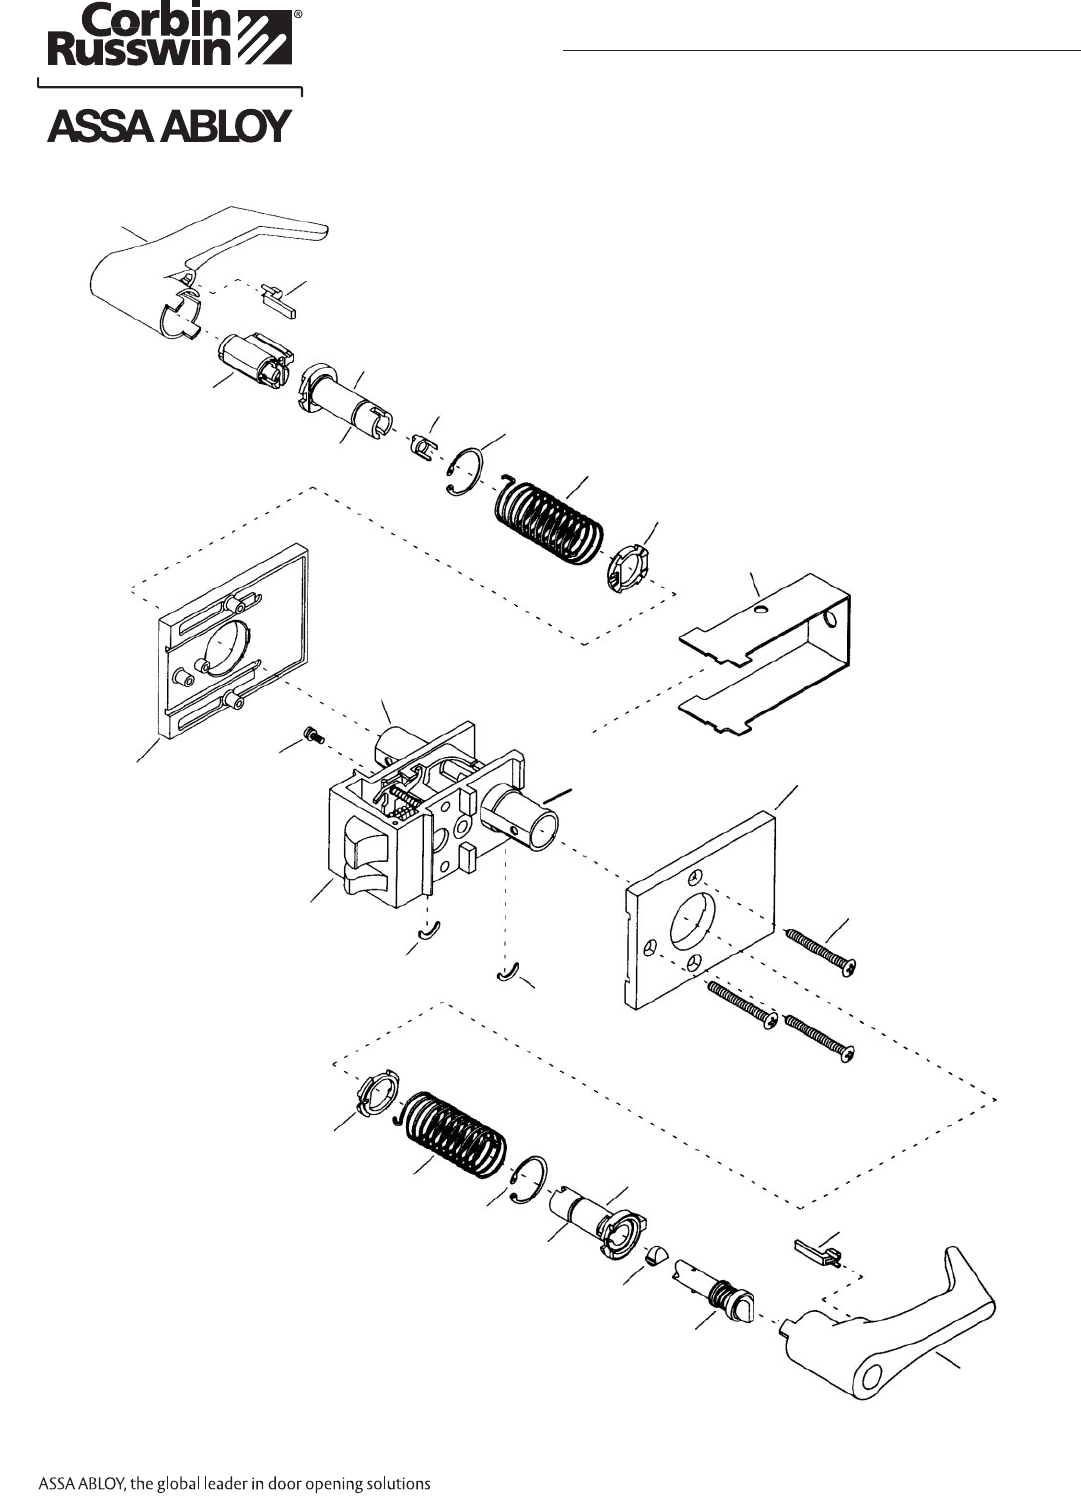 Wiring Diagram Corbin Russwin Ed5200s Page 5 And A Abloy Diagrams 45066 Cr Ed6000 Ut5200 Series Parts Manual Aadss1010108 Rh Usermanual Wiki Ed5200